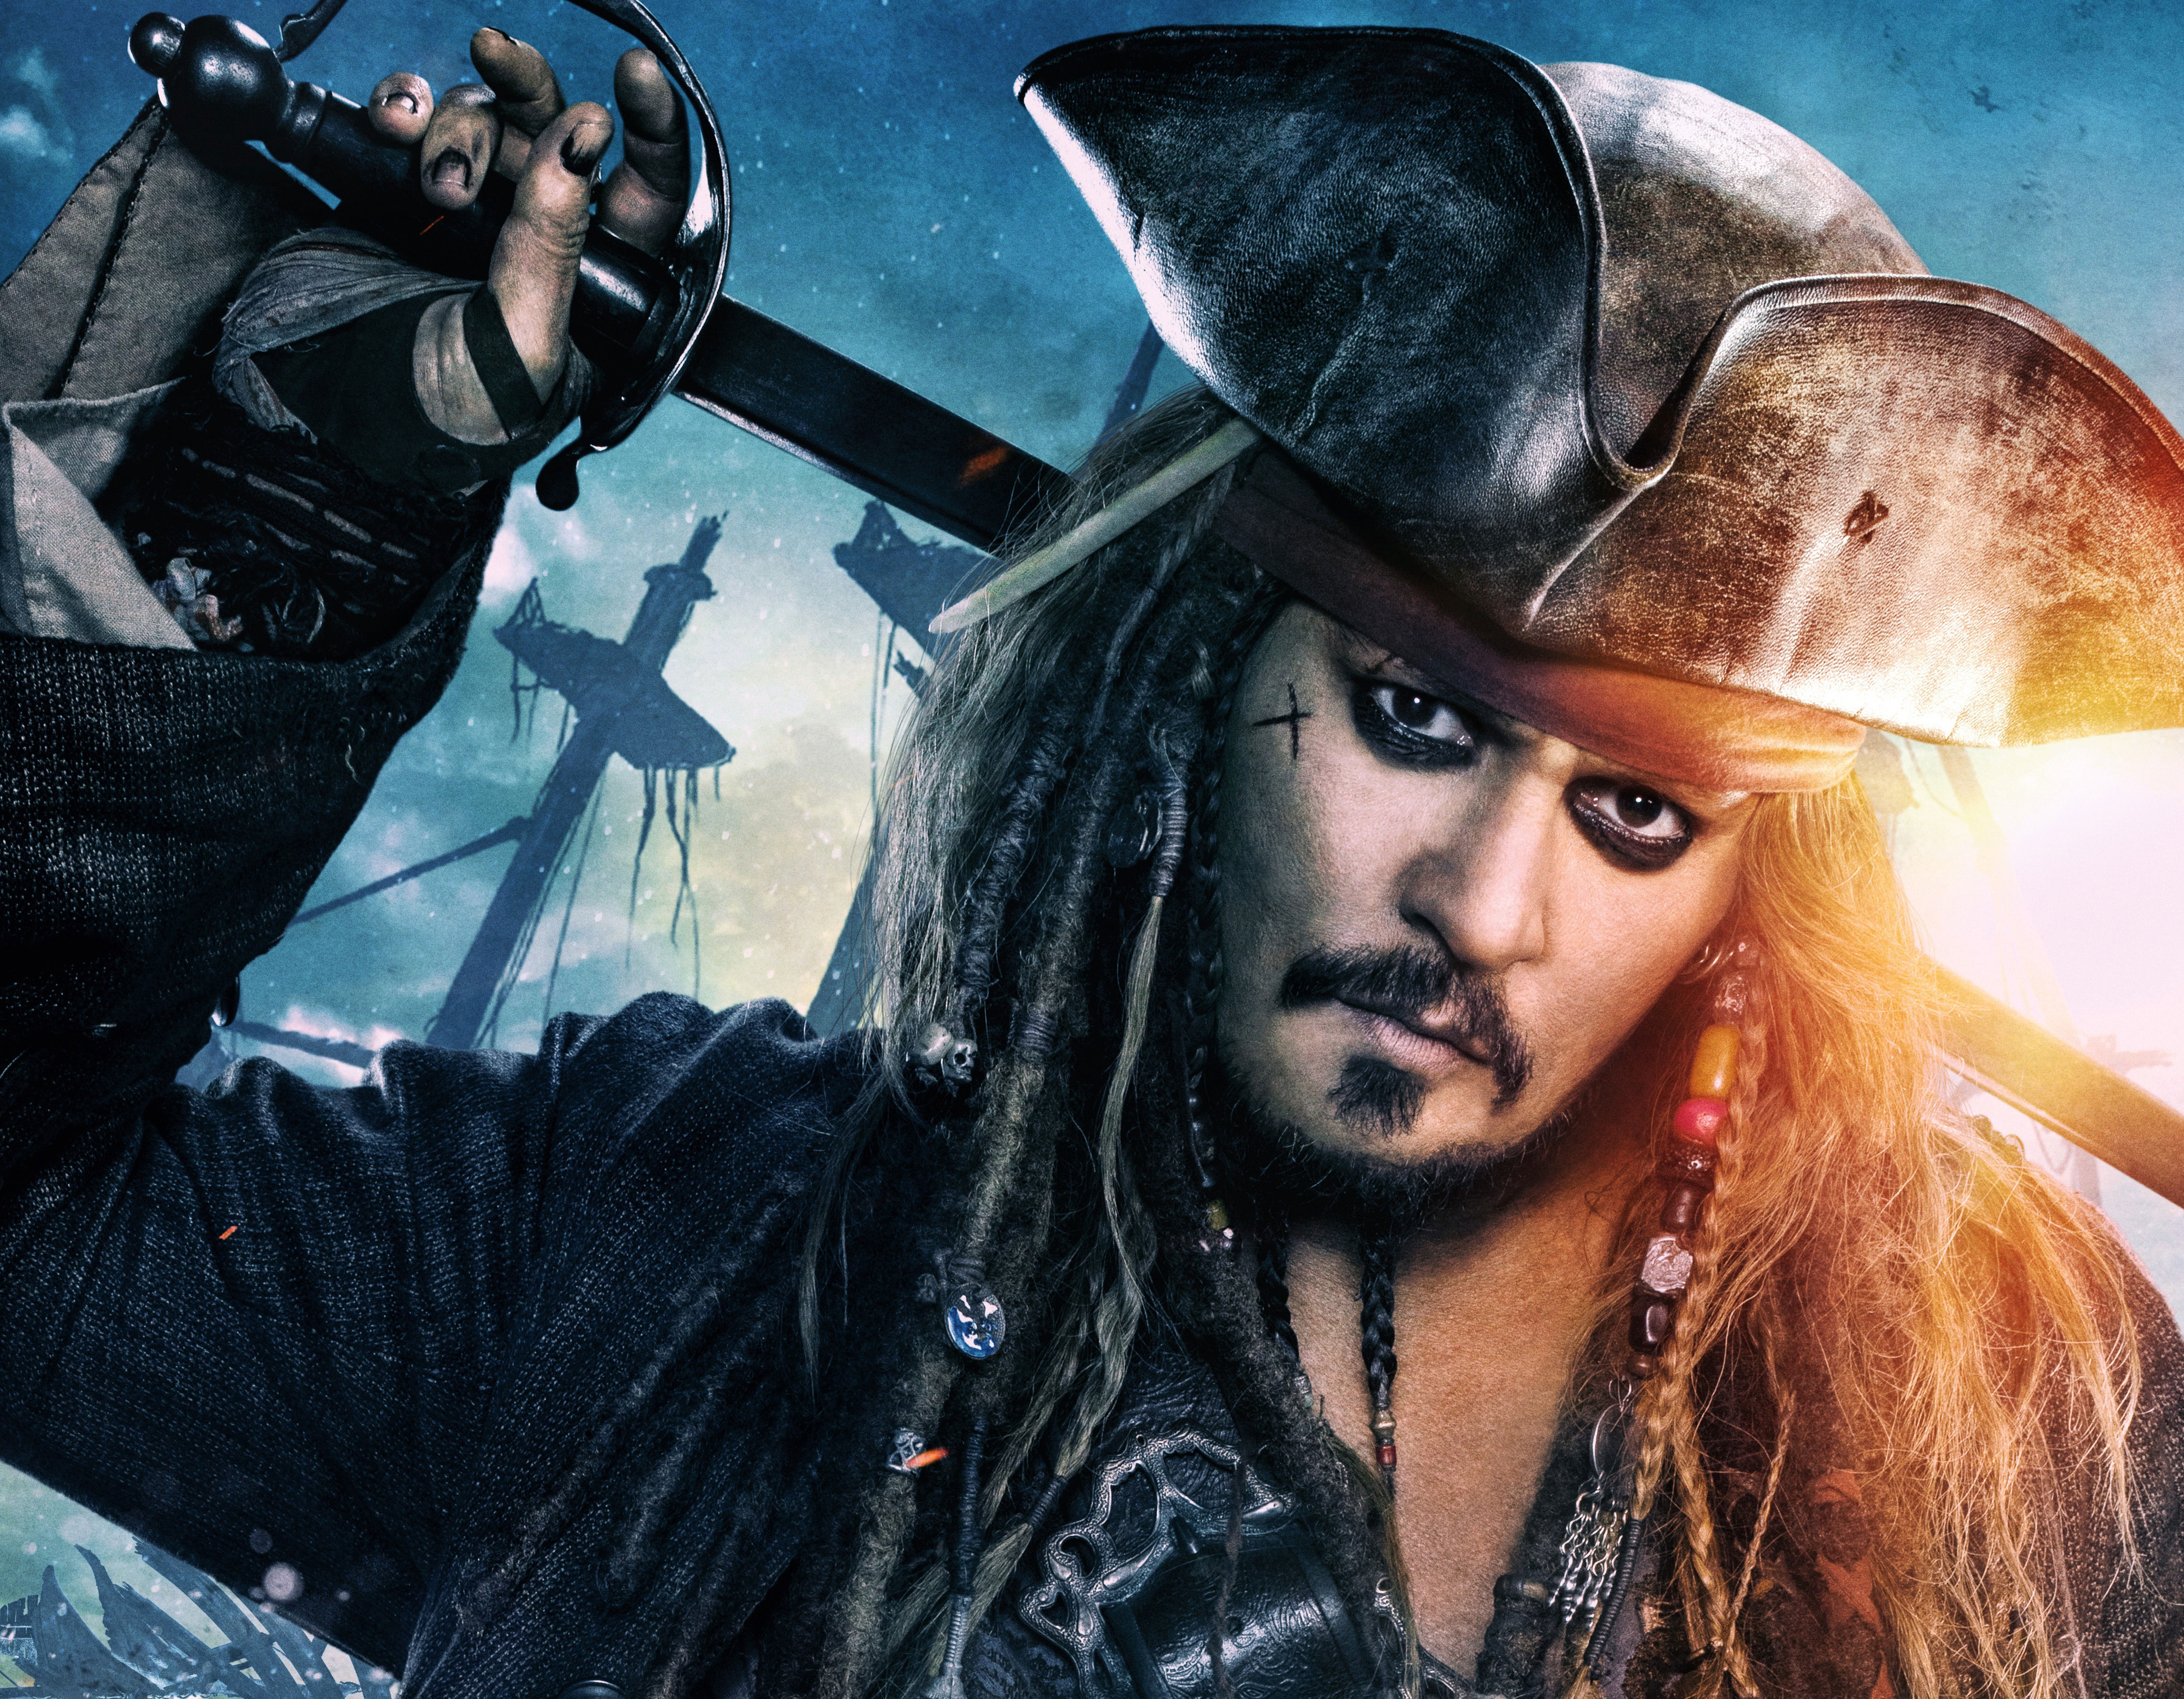 Jack Sparrow In Pirates Of The Caribbean Dead Men Tell No